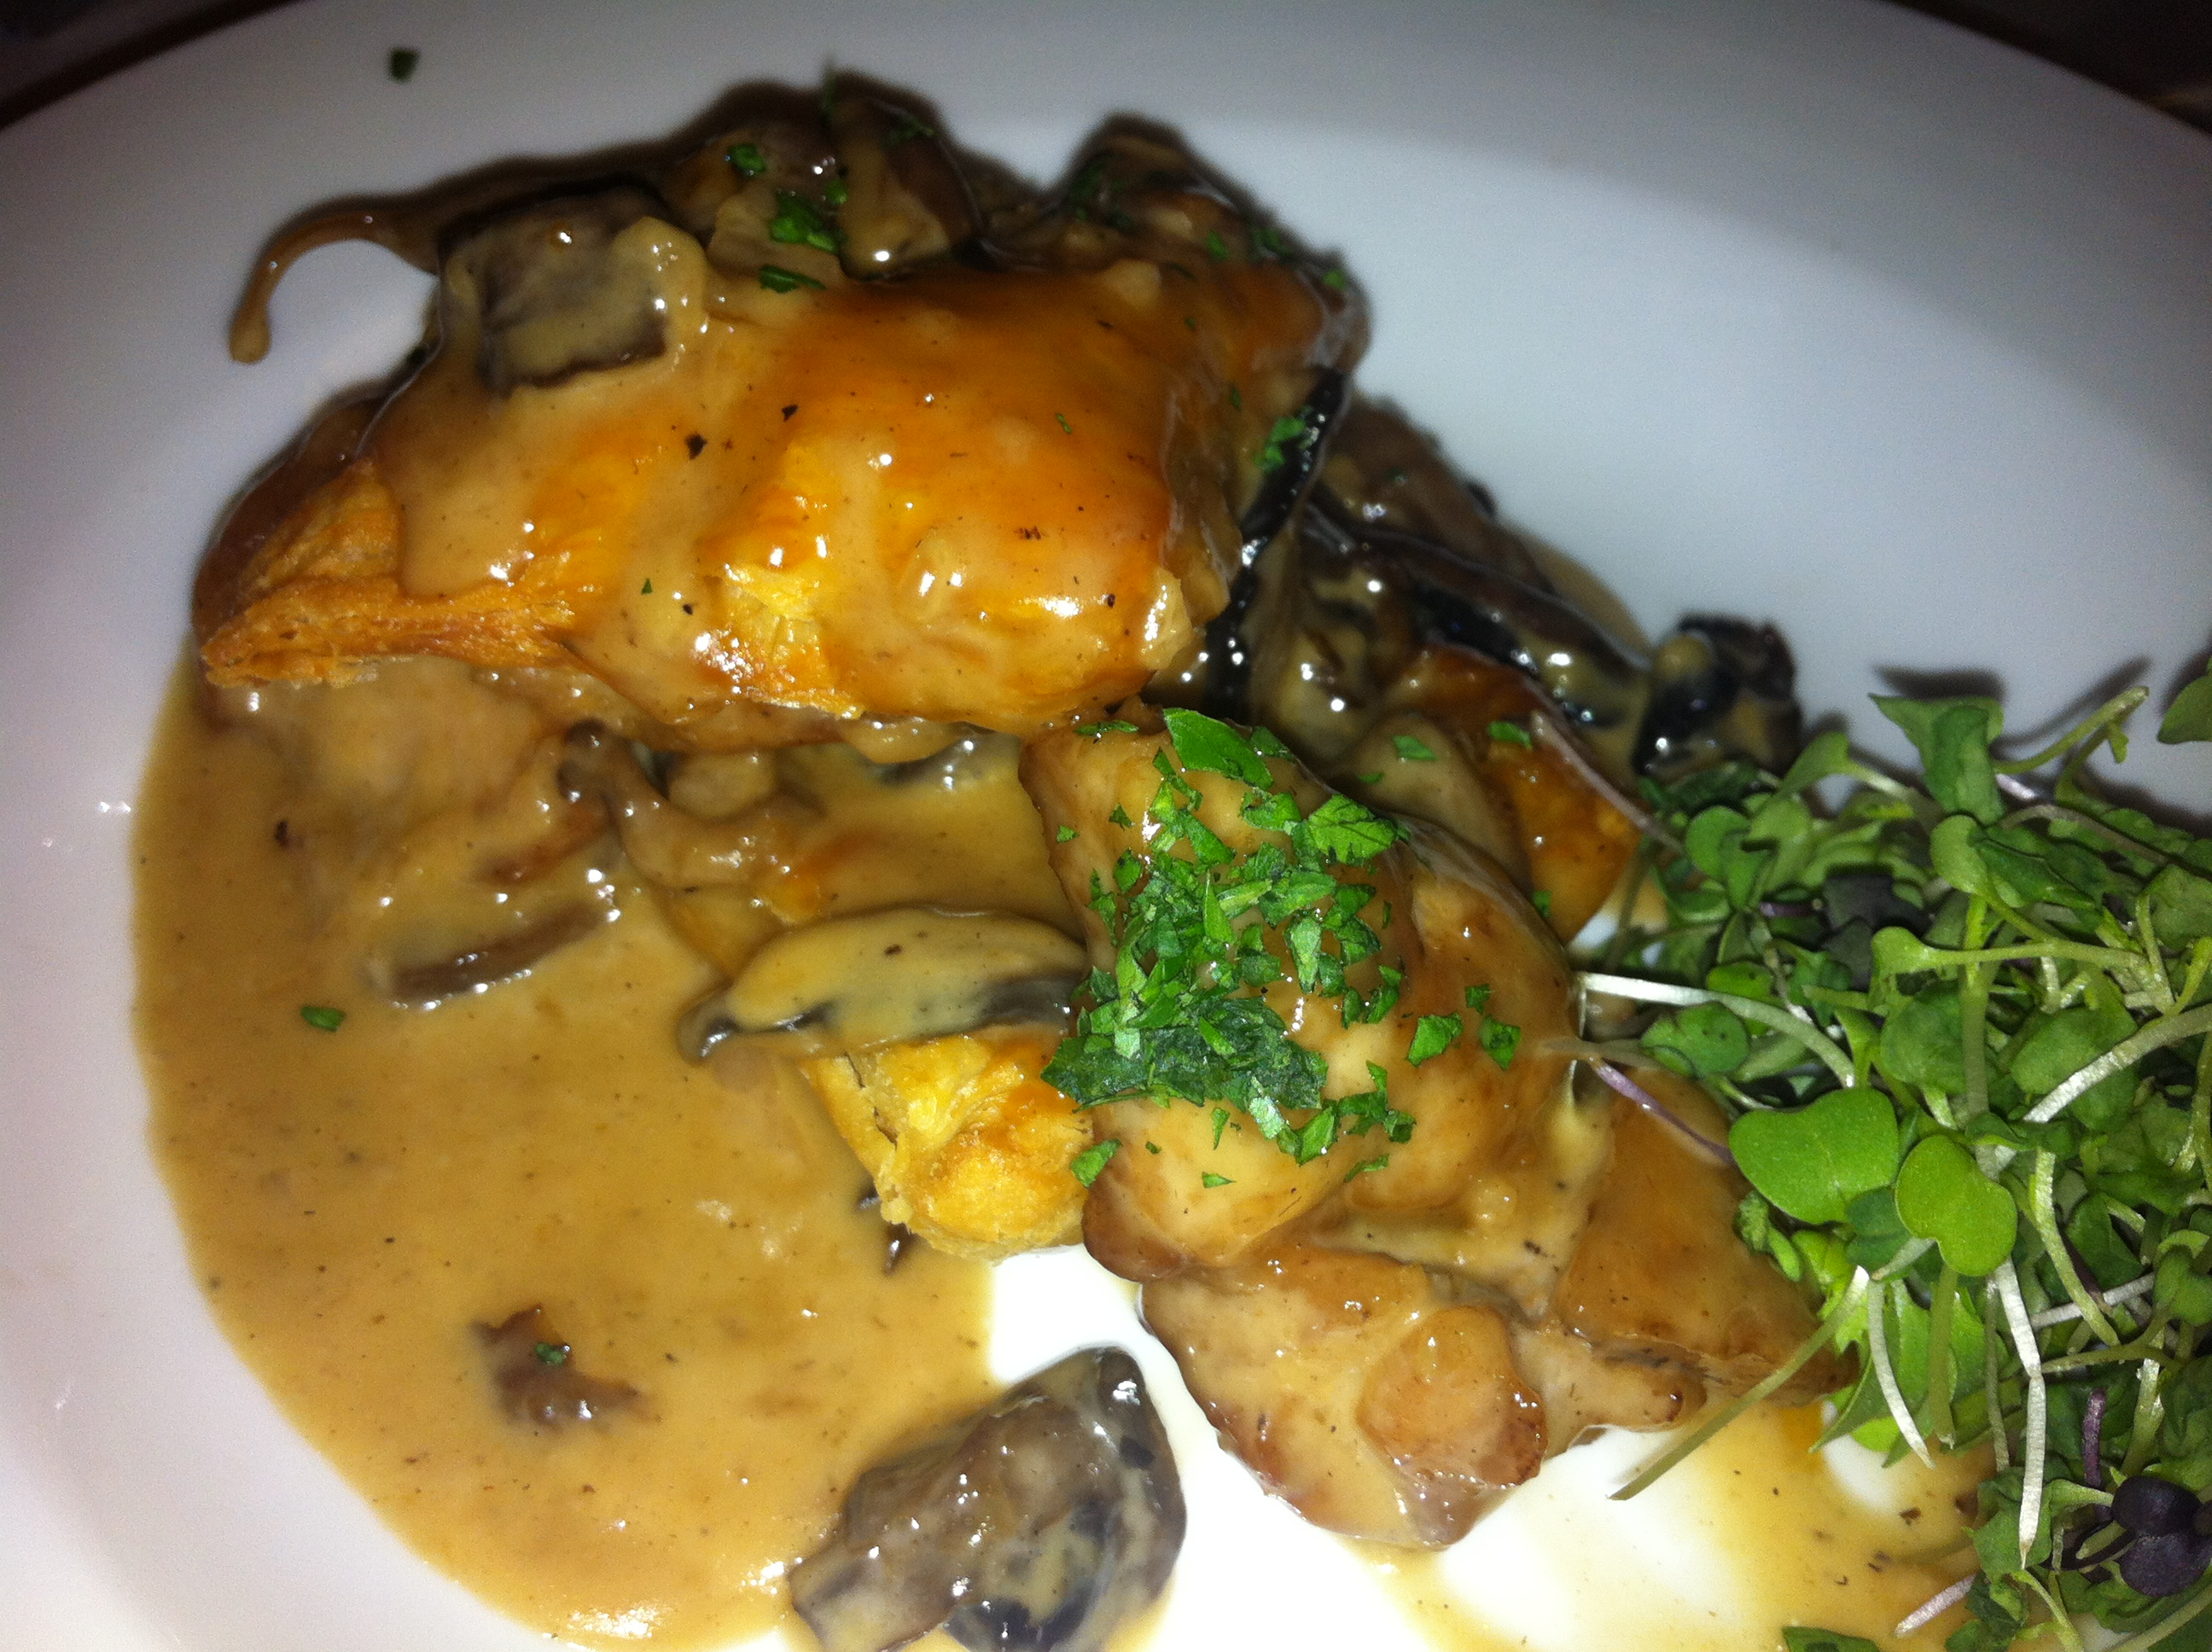 The veal sweetbreads were definitely the favorite on the appetizer ...